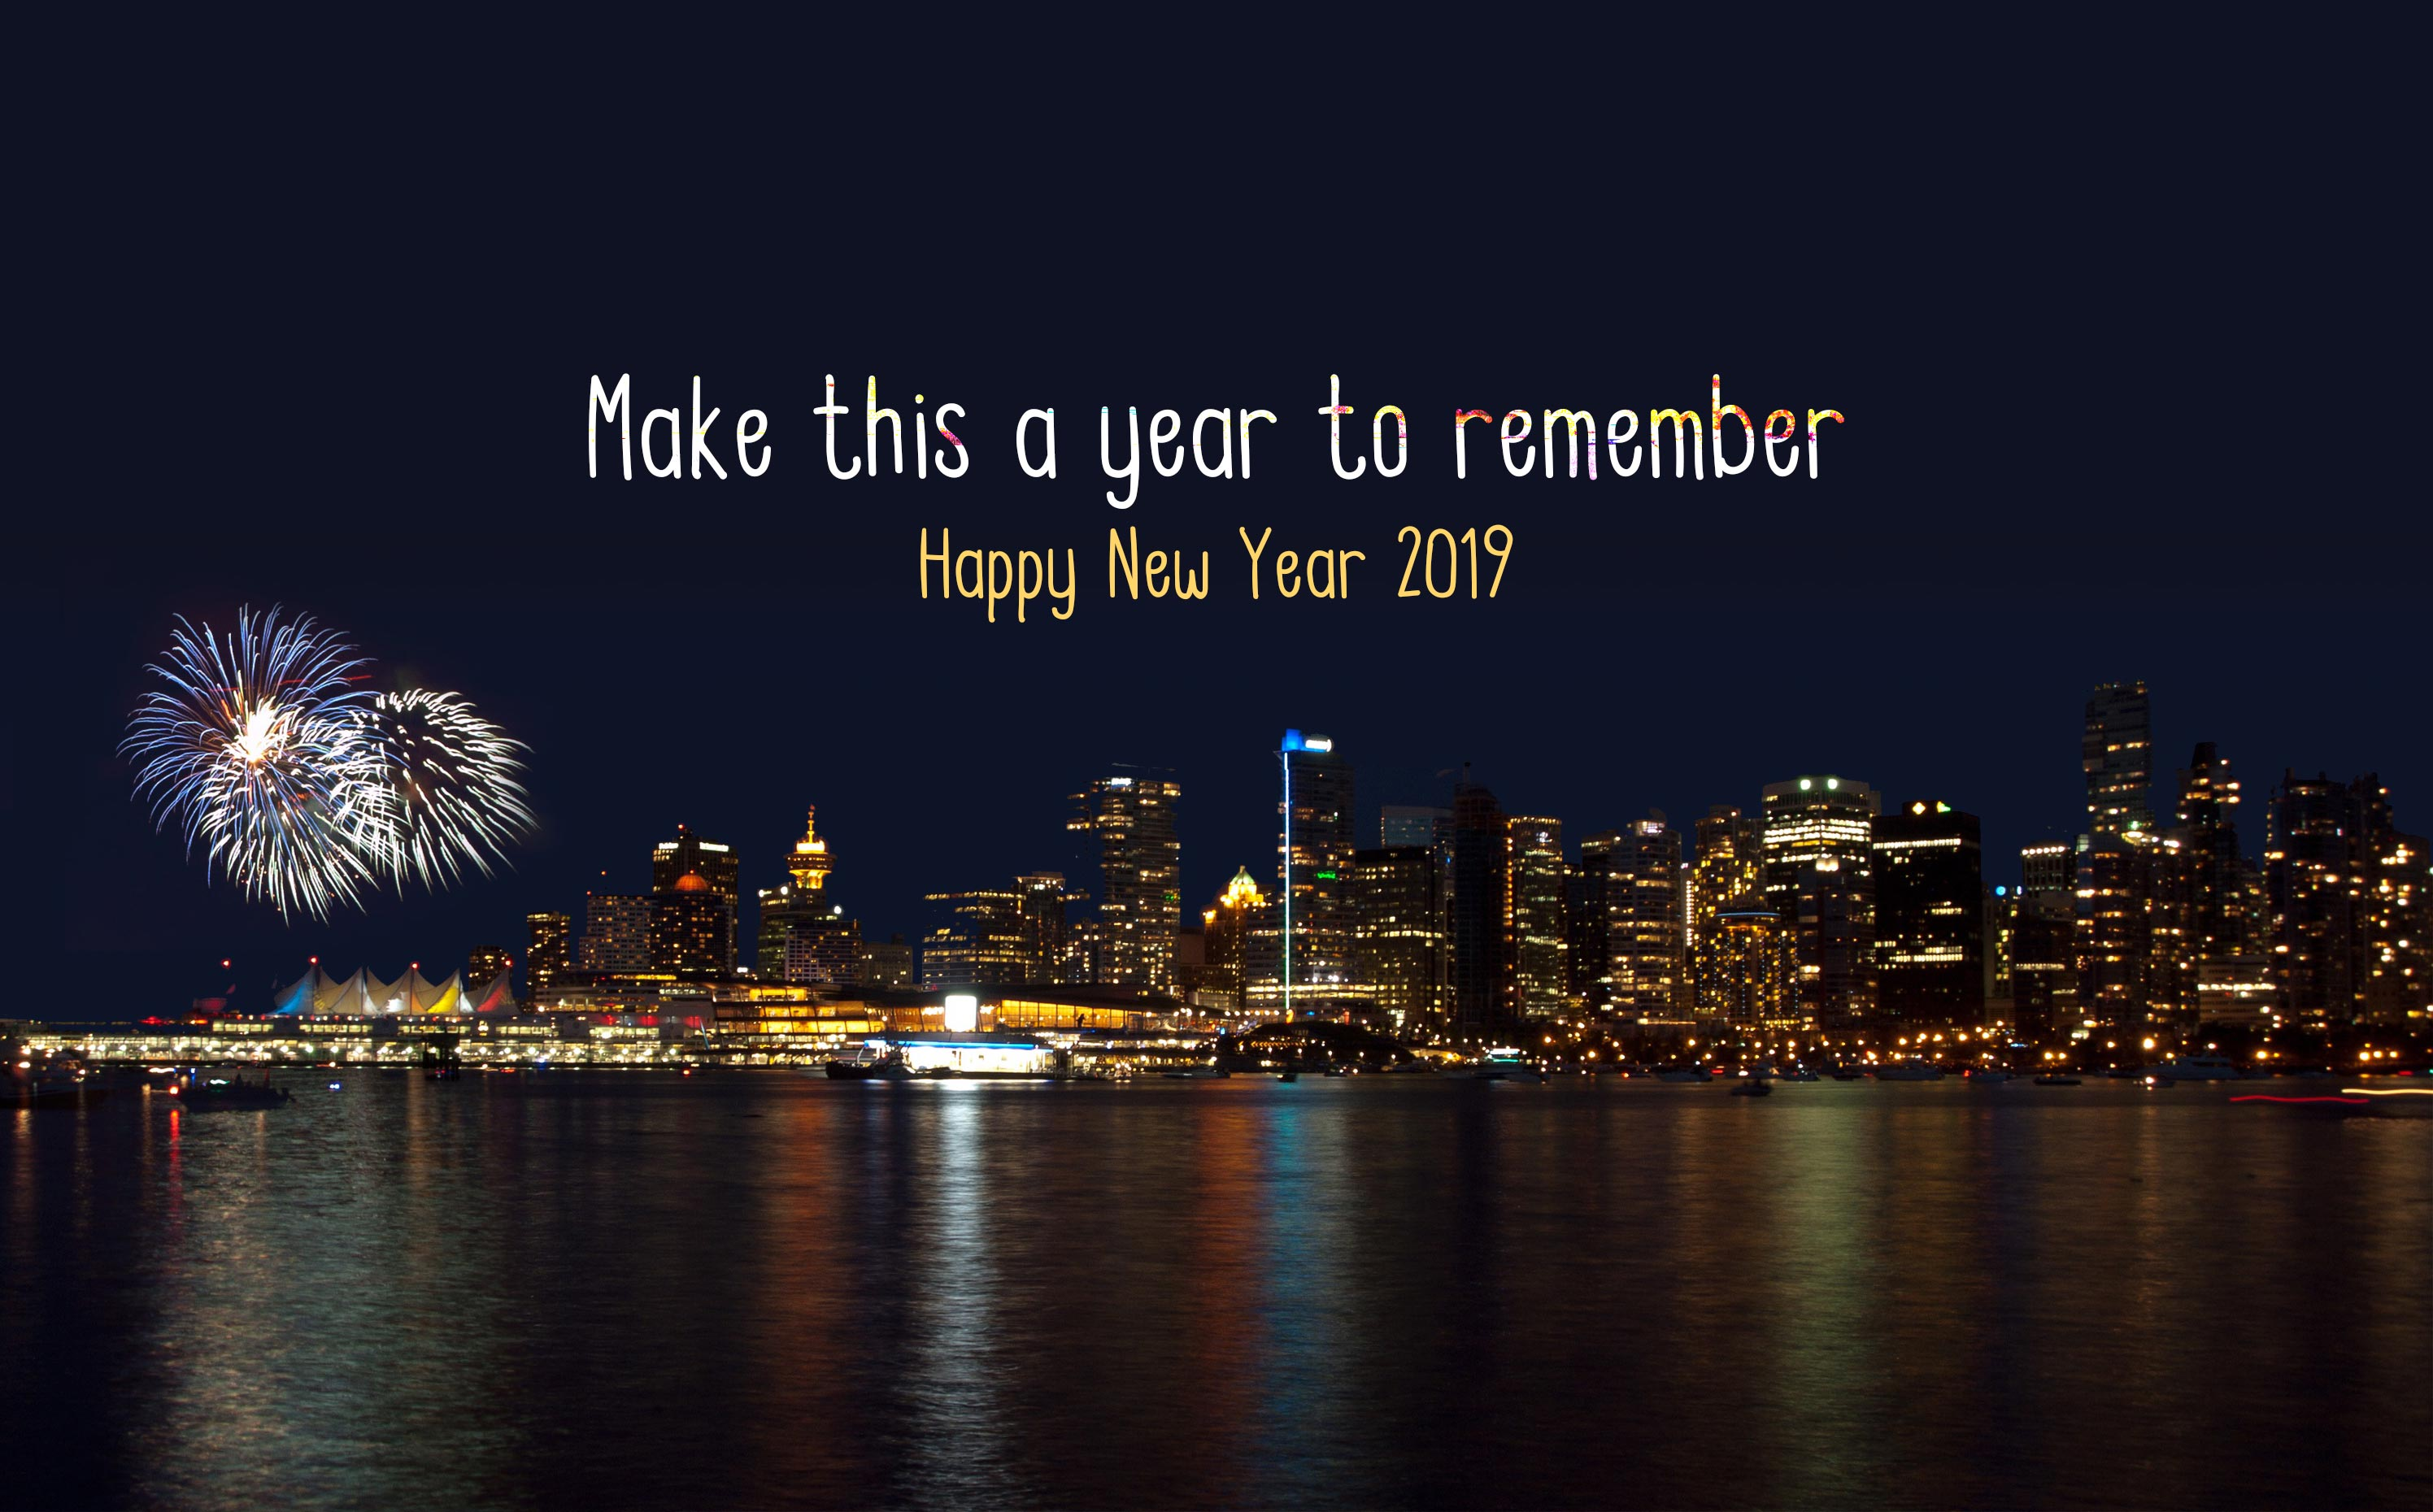 Happy New Year 2019 City Fireworks Pic Wallpaper - Happy New Year 2019 City , HD Wallpaper & Backgrounds